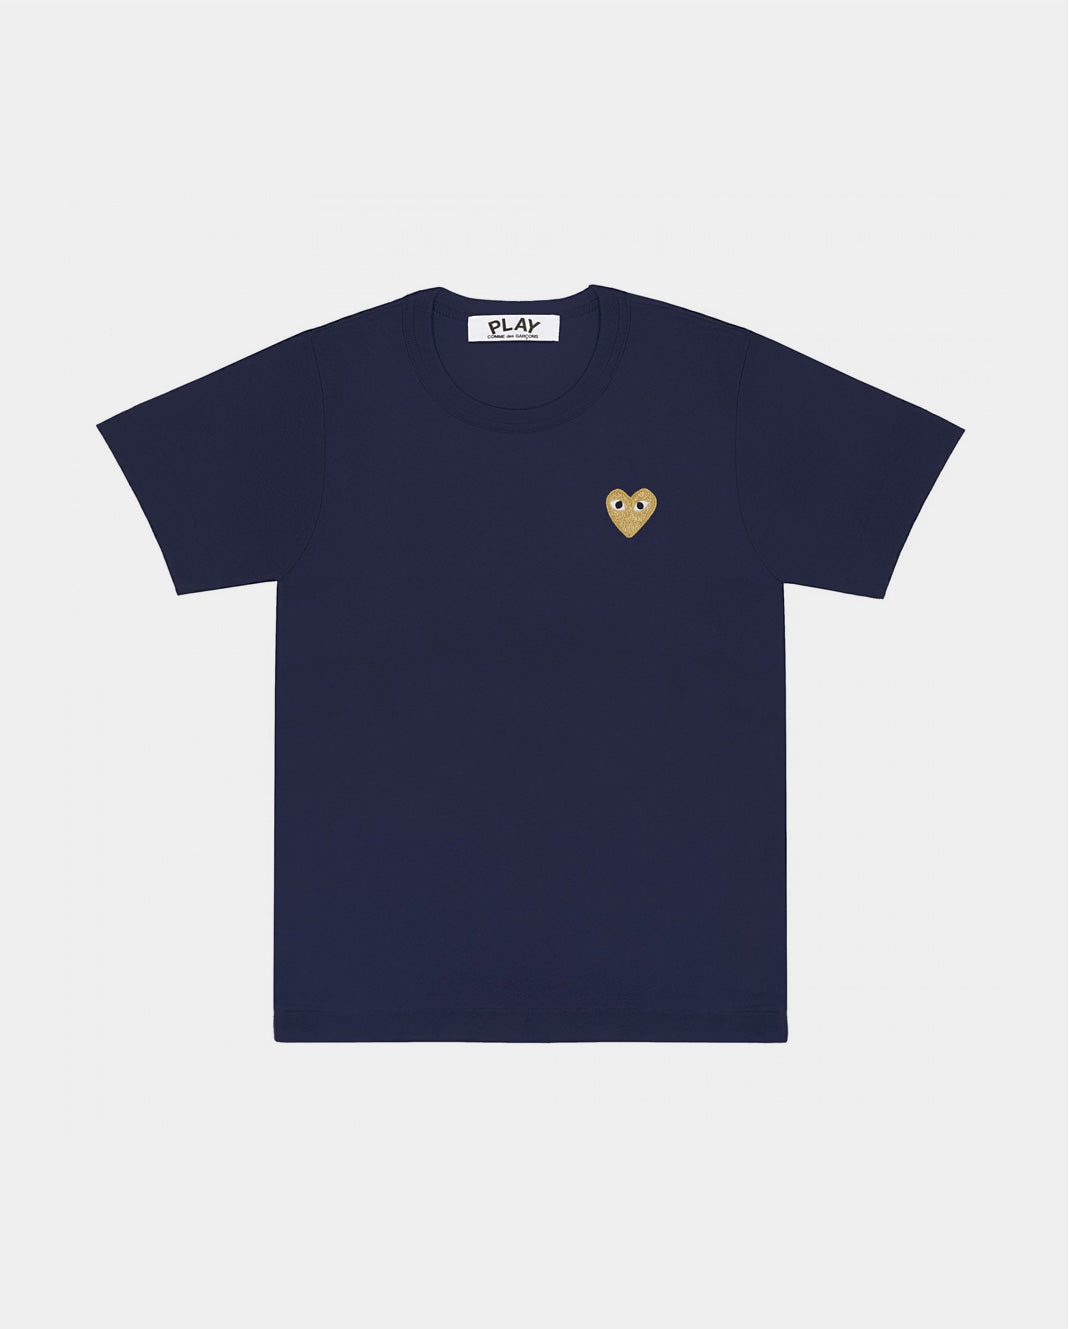 T-SHIRT T215 GOLD HEART / NAVY